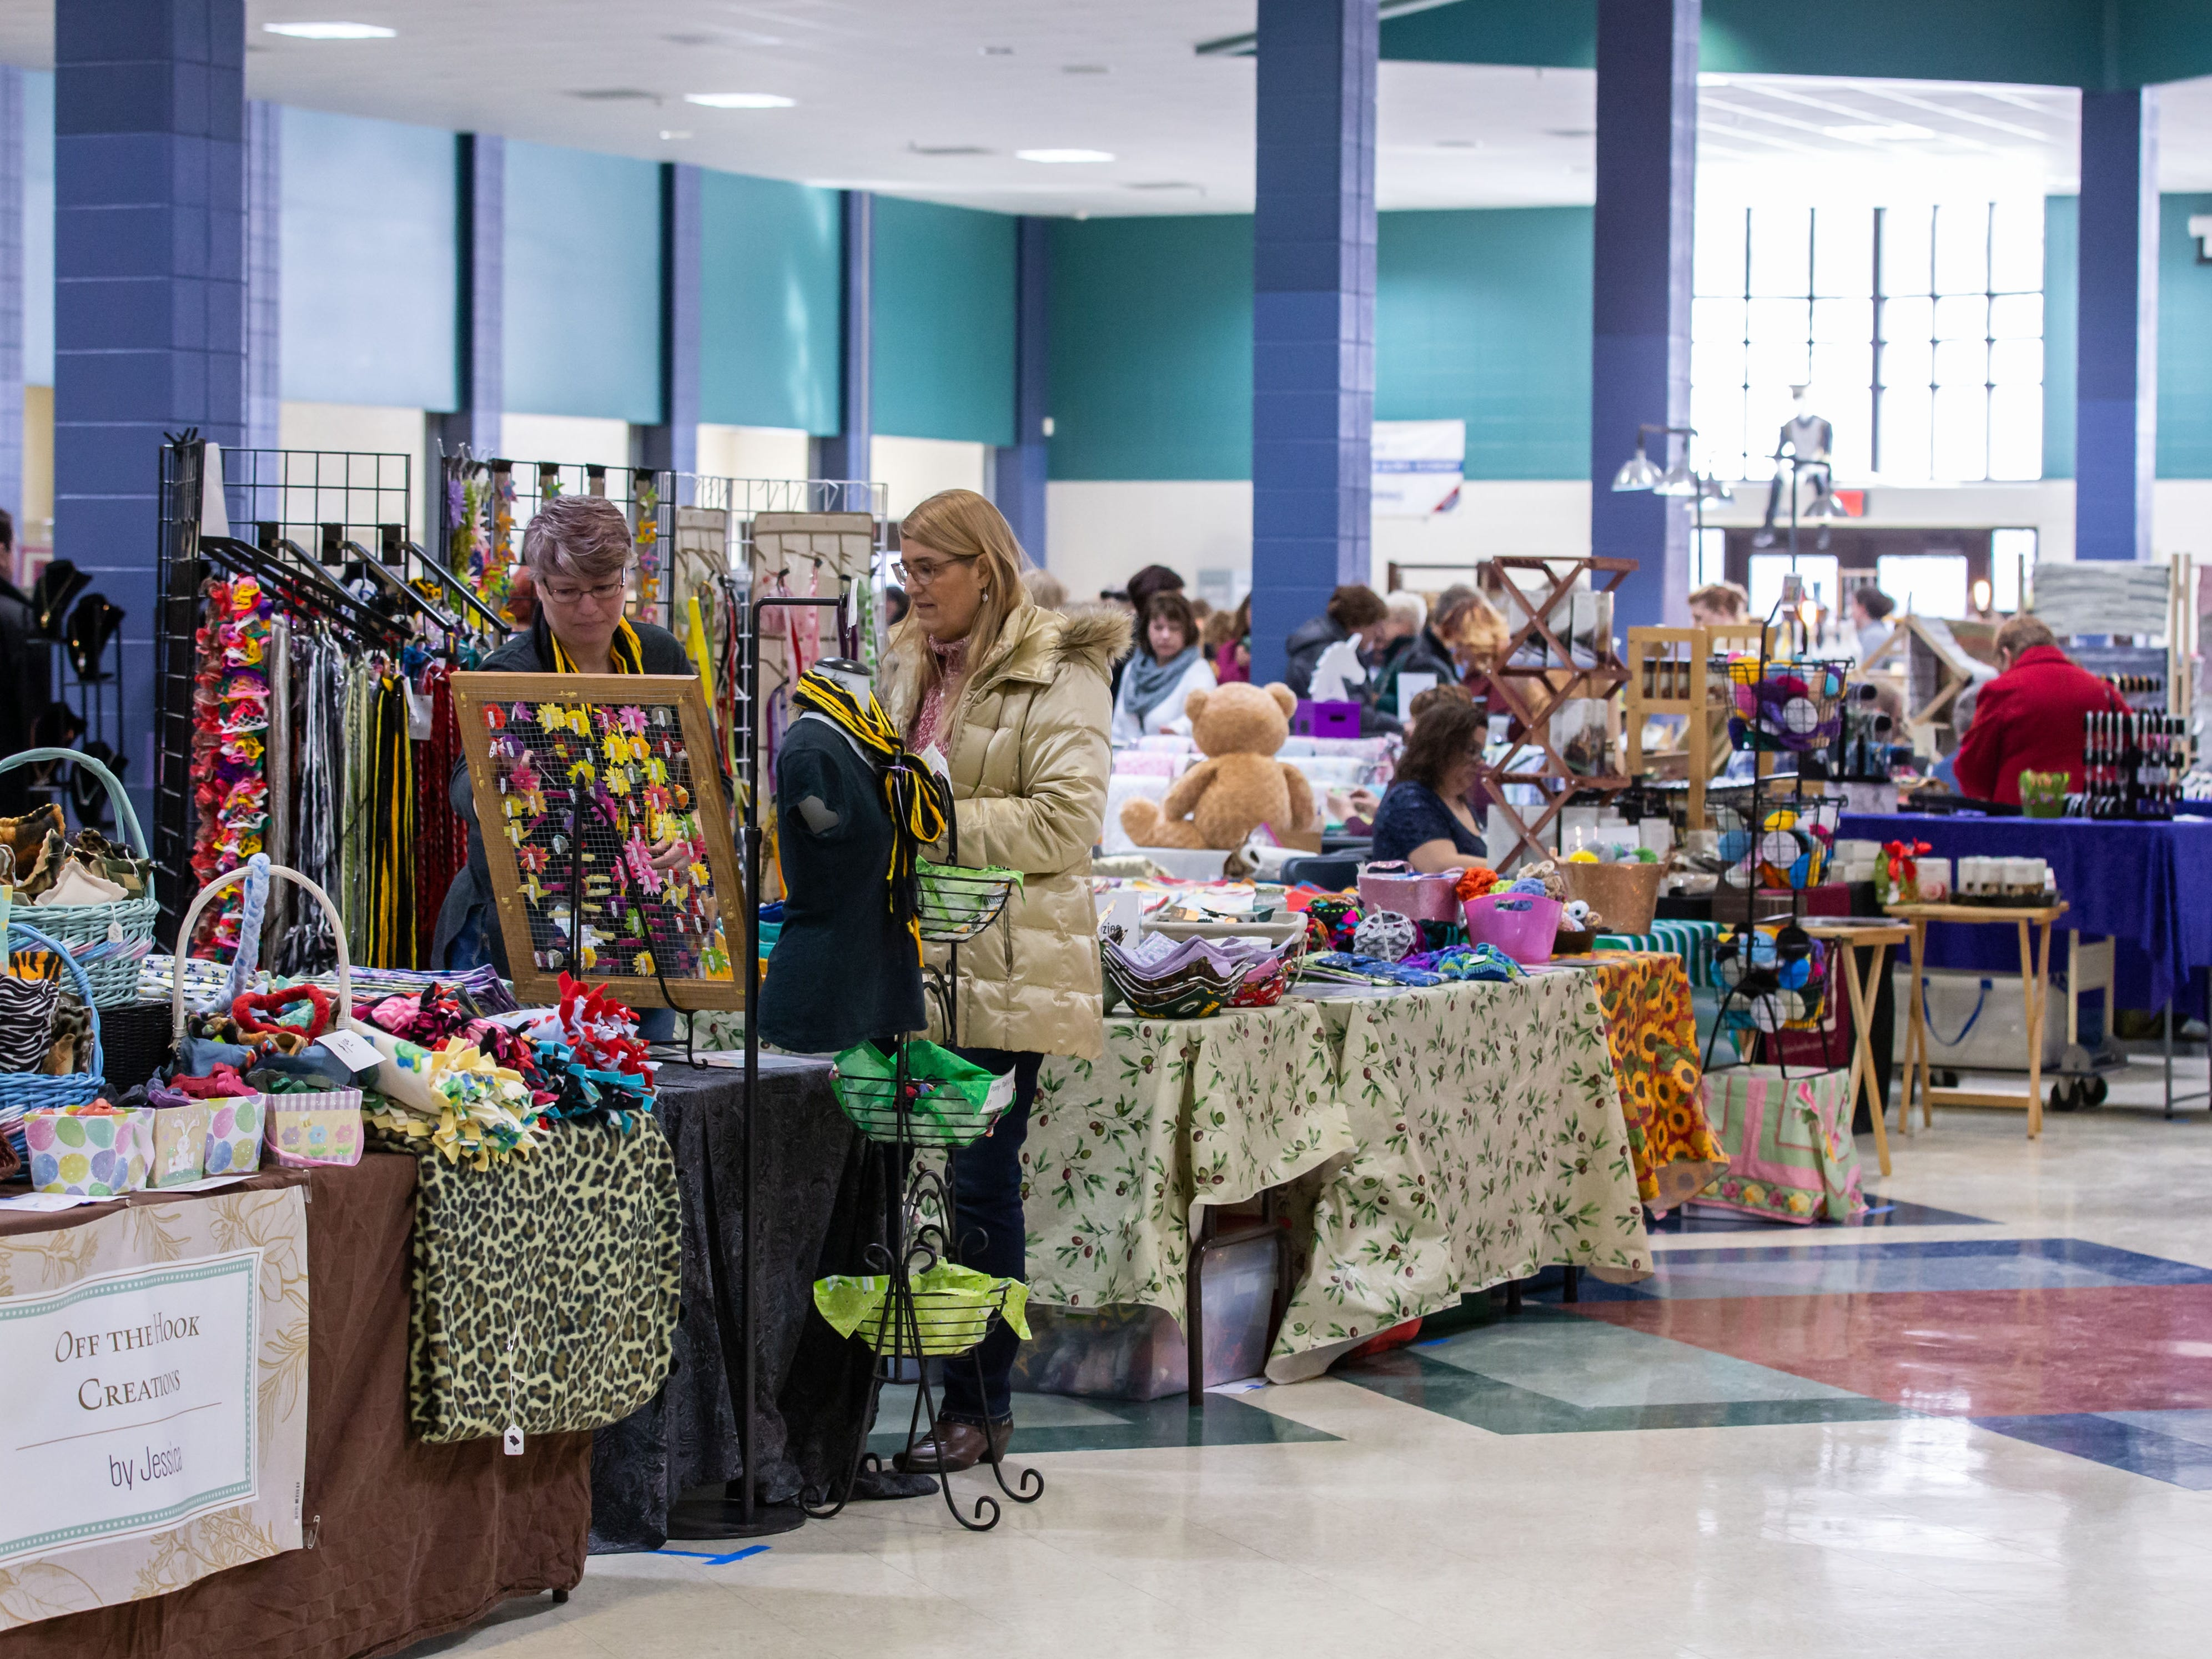 Shoppers browse a selection of unique hand-crafted items from over eighty vendors during the 3rd annual March into Spring Craft Fair at Franklin High School on Saturday, March 2, 2019. The event is a fundraiser for the Franklin High School Marching Band.